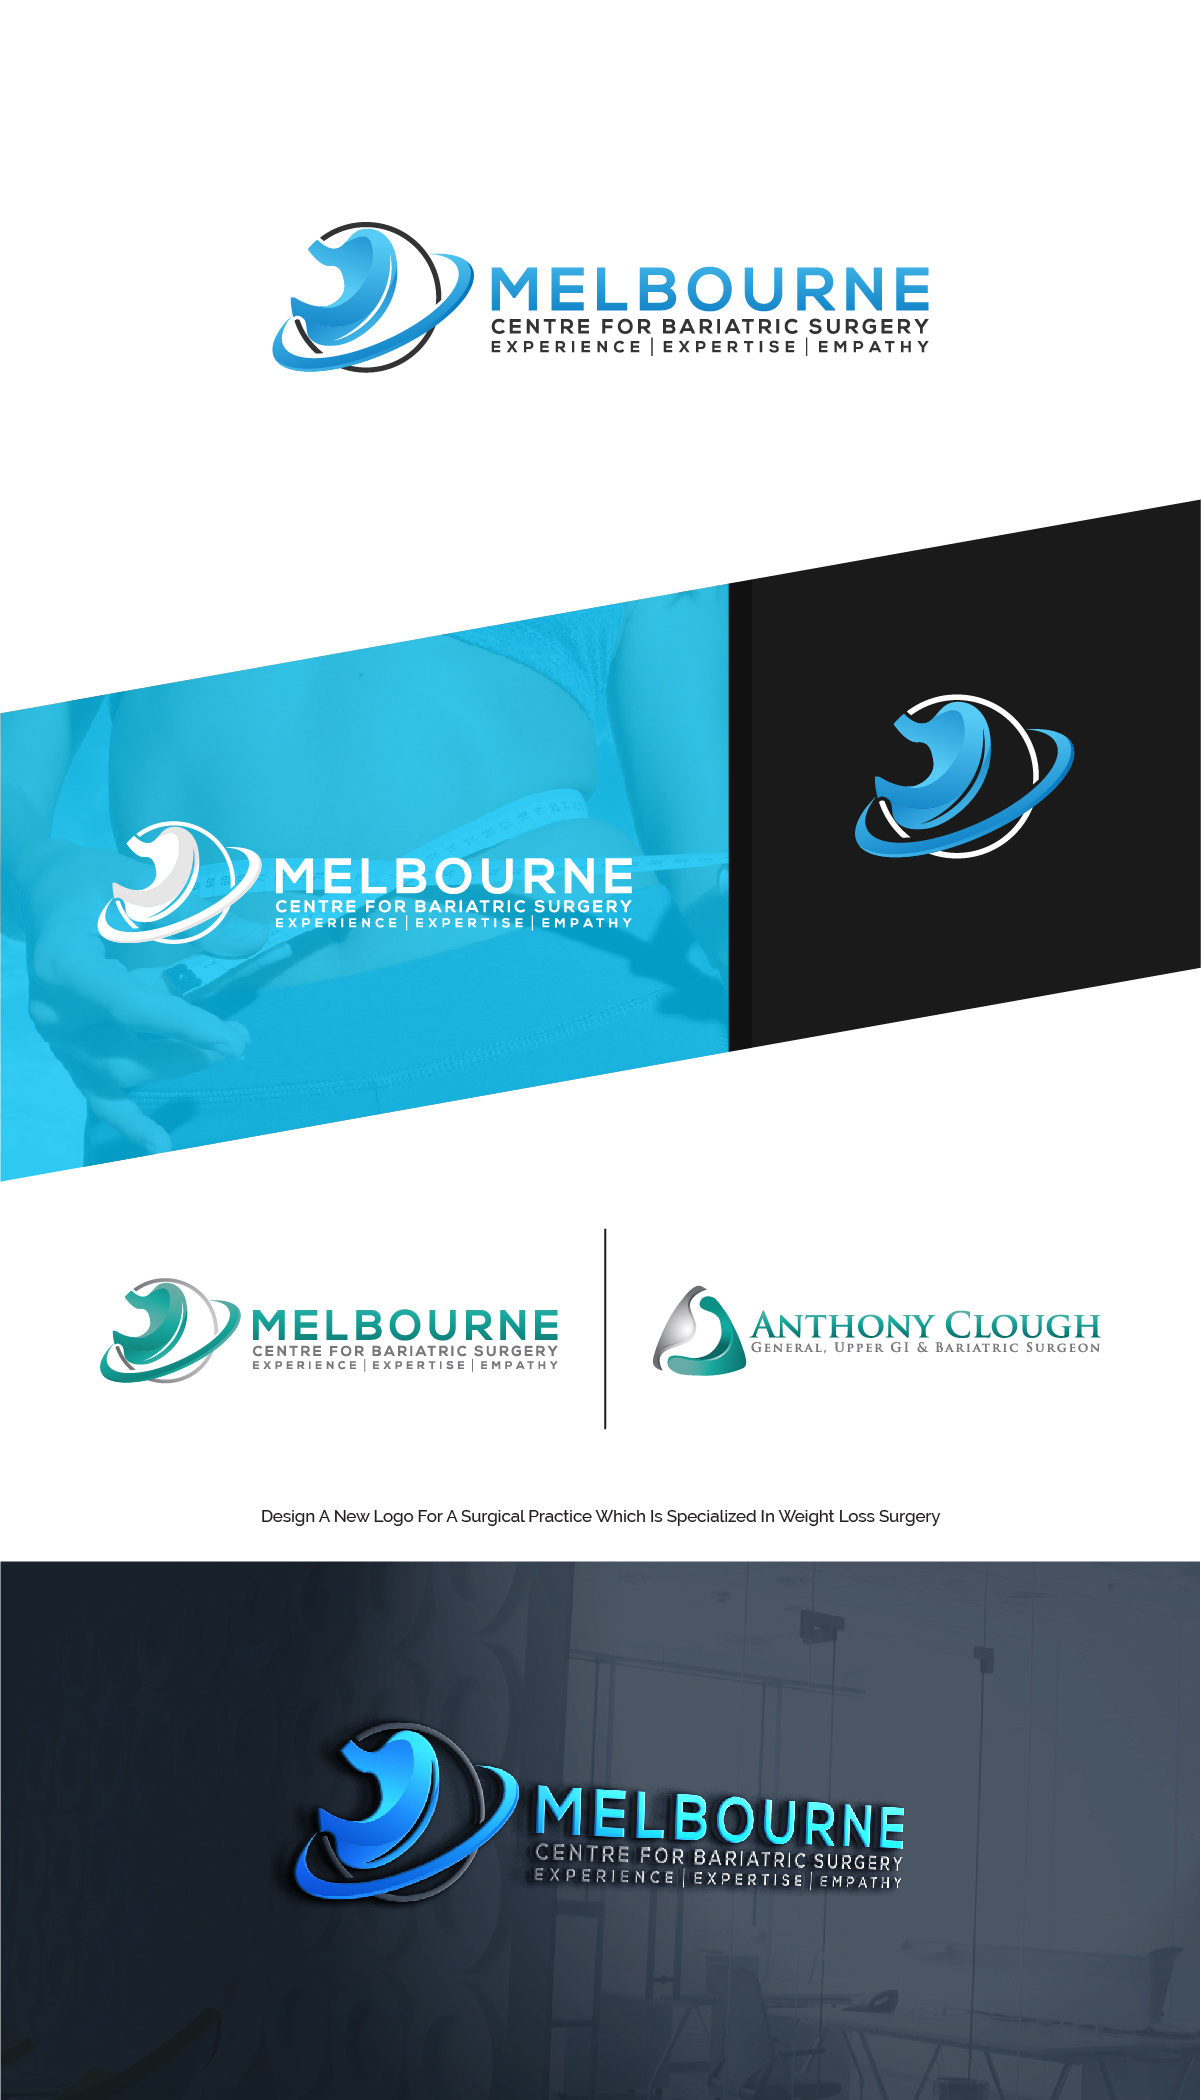 Playful Conservative Health Care Logo Design For Melbourne Centre For Bariatric Surgery Experience Expertise Empathy By Creativeworx Design 23716845